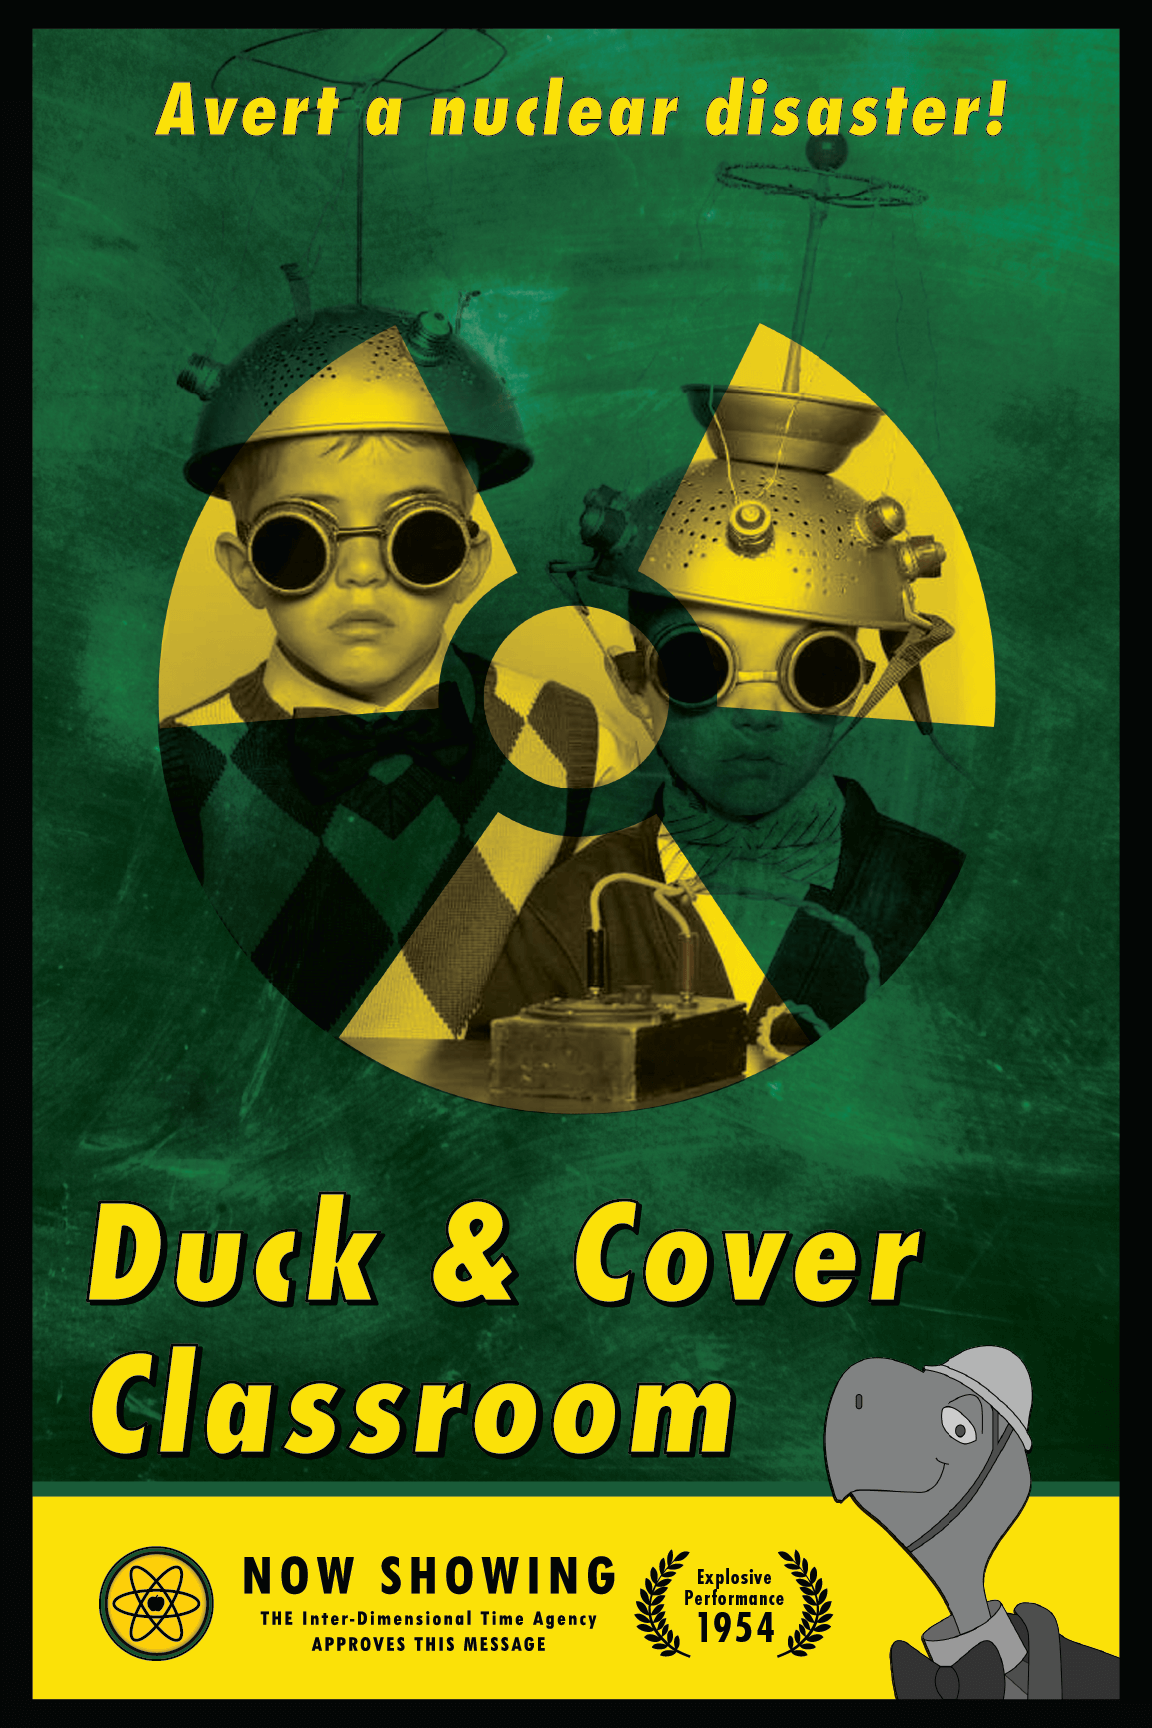 Duck & Cover Classroom Poster